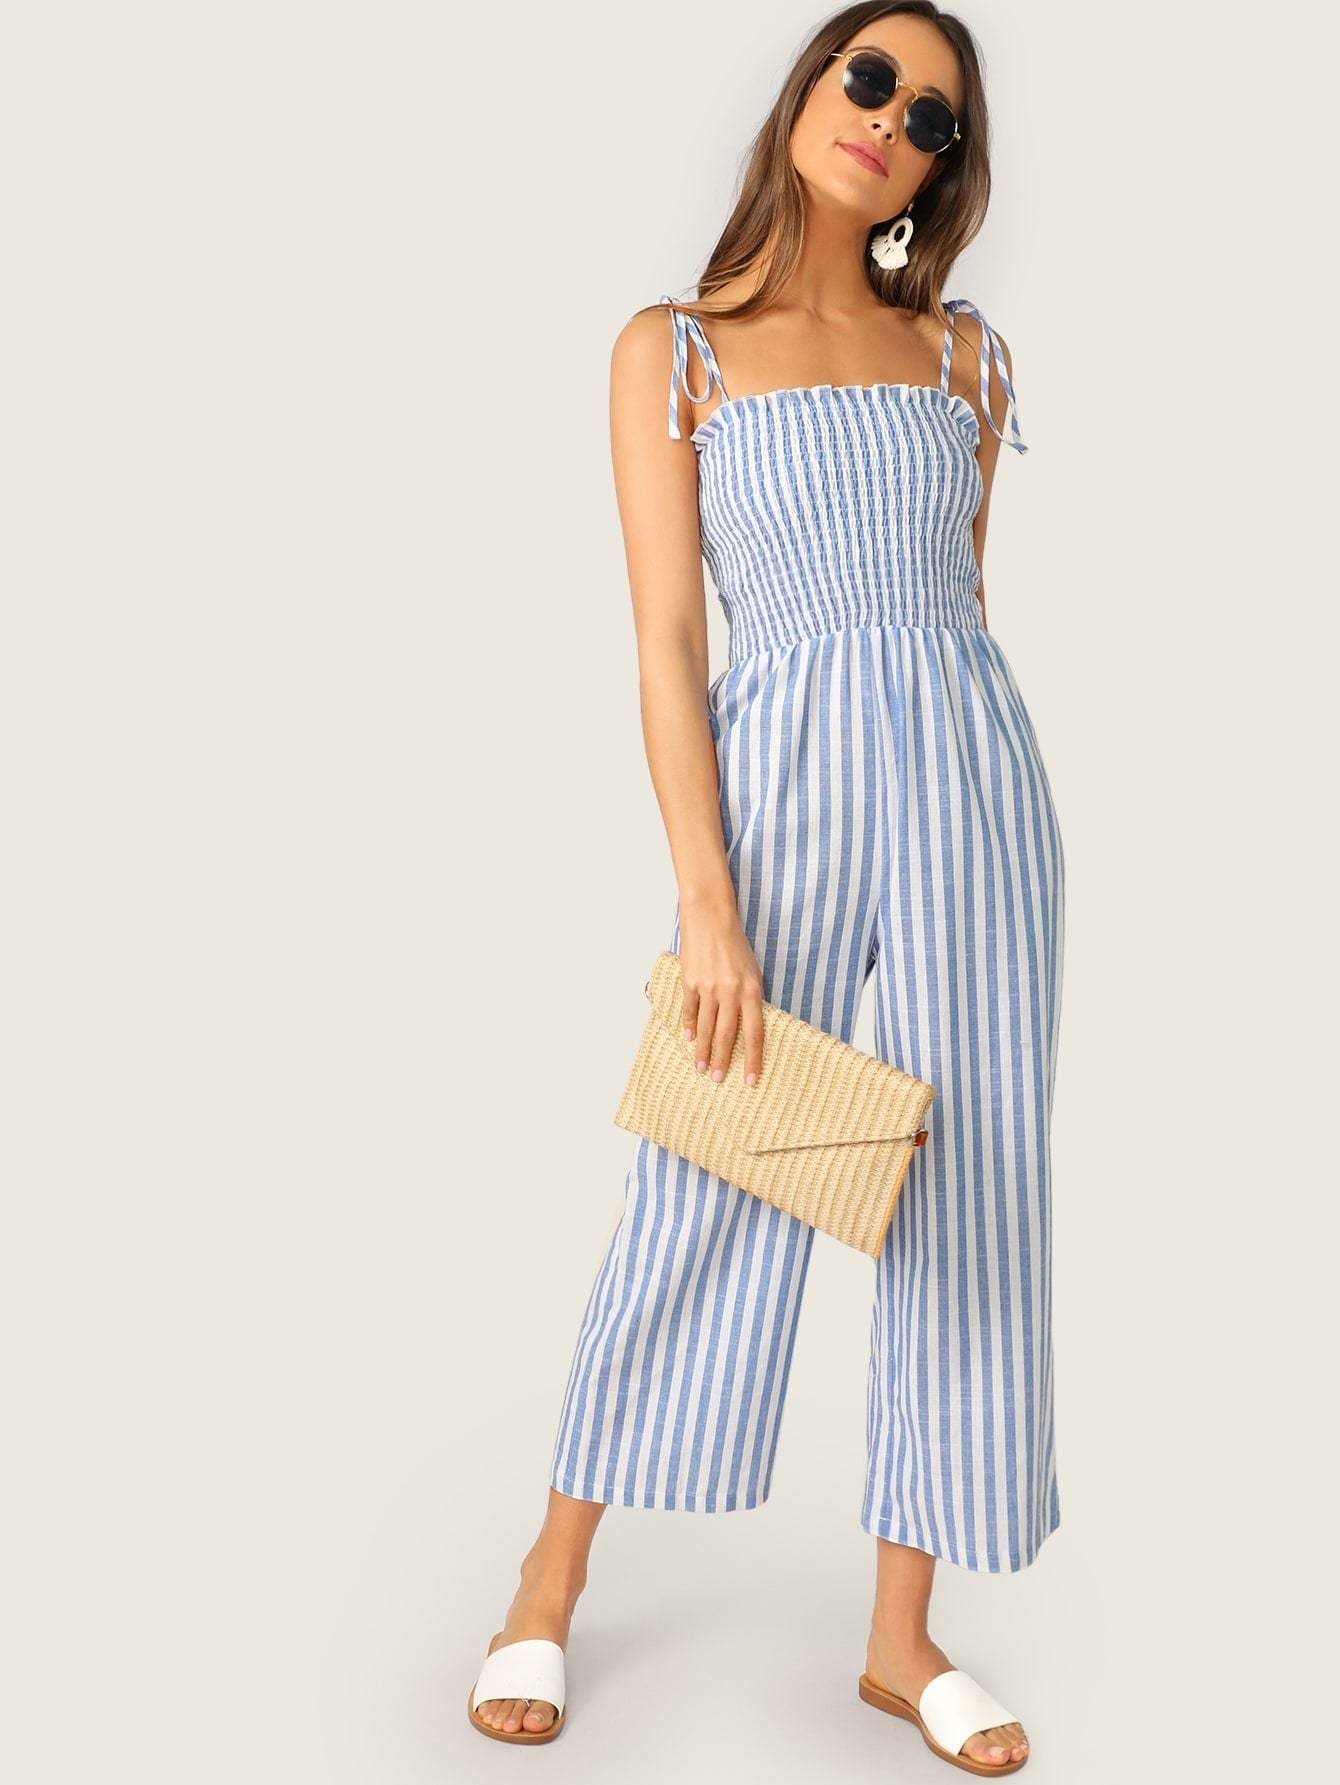 Two Tone Knot Shoulder Frill Smocked Striped Jumpsuit